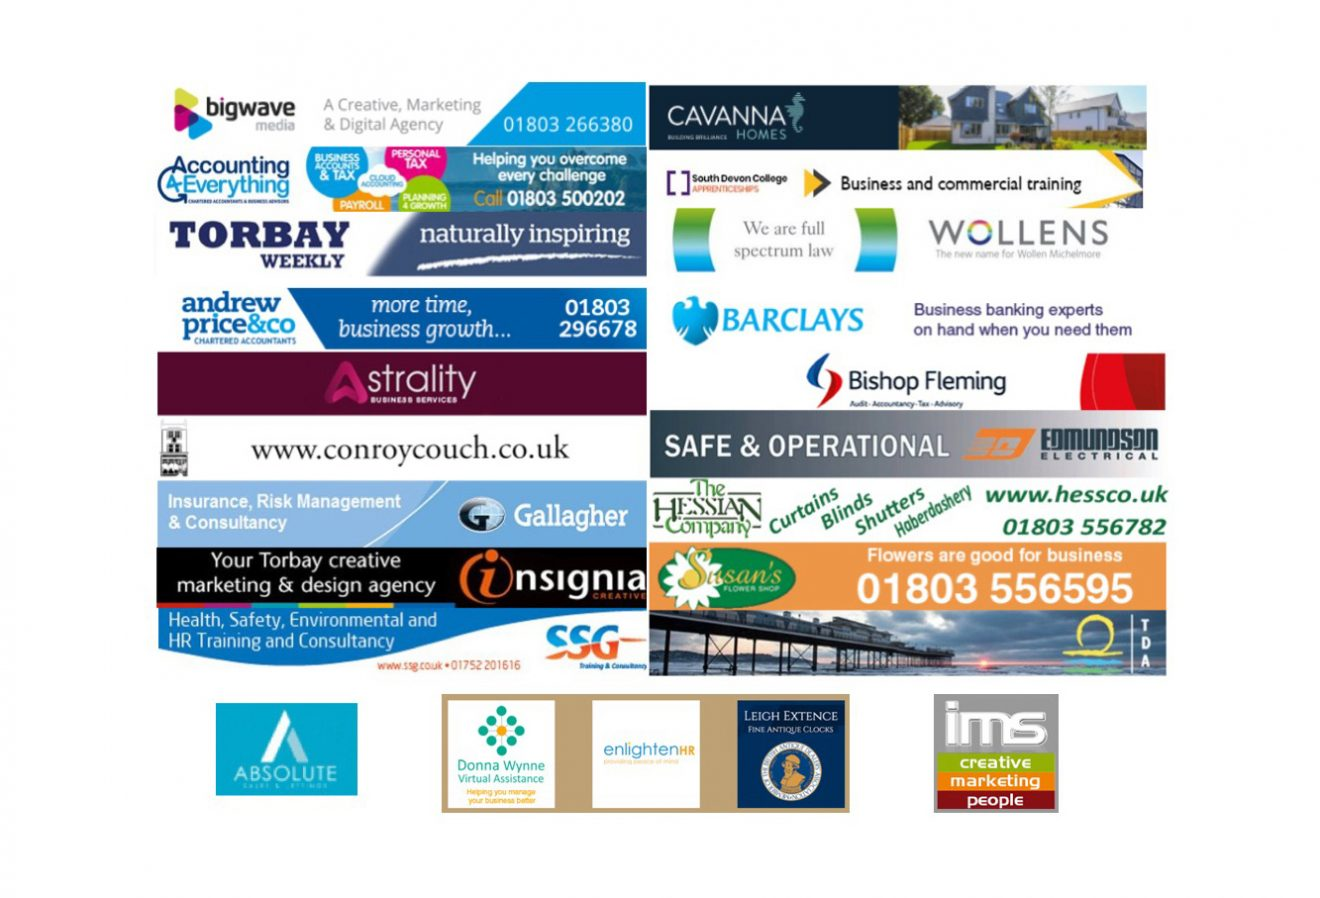 Huge thanks to all our Sponsors